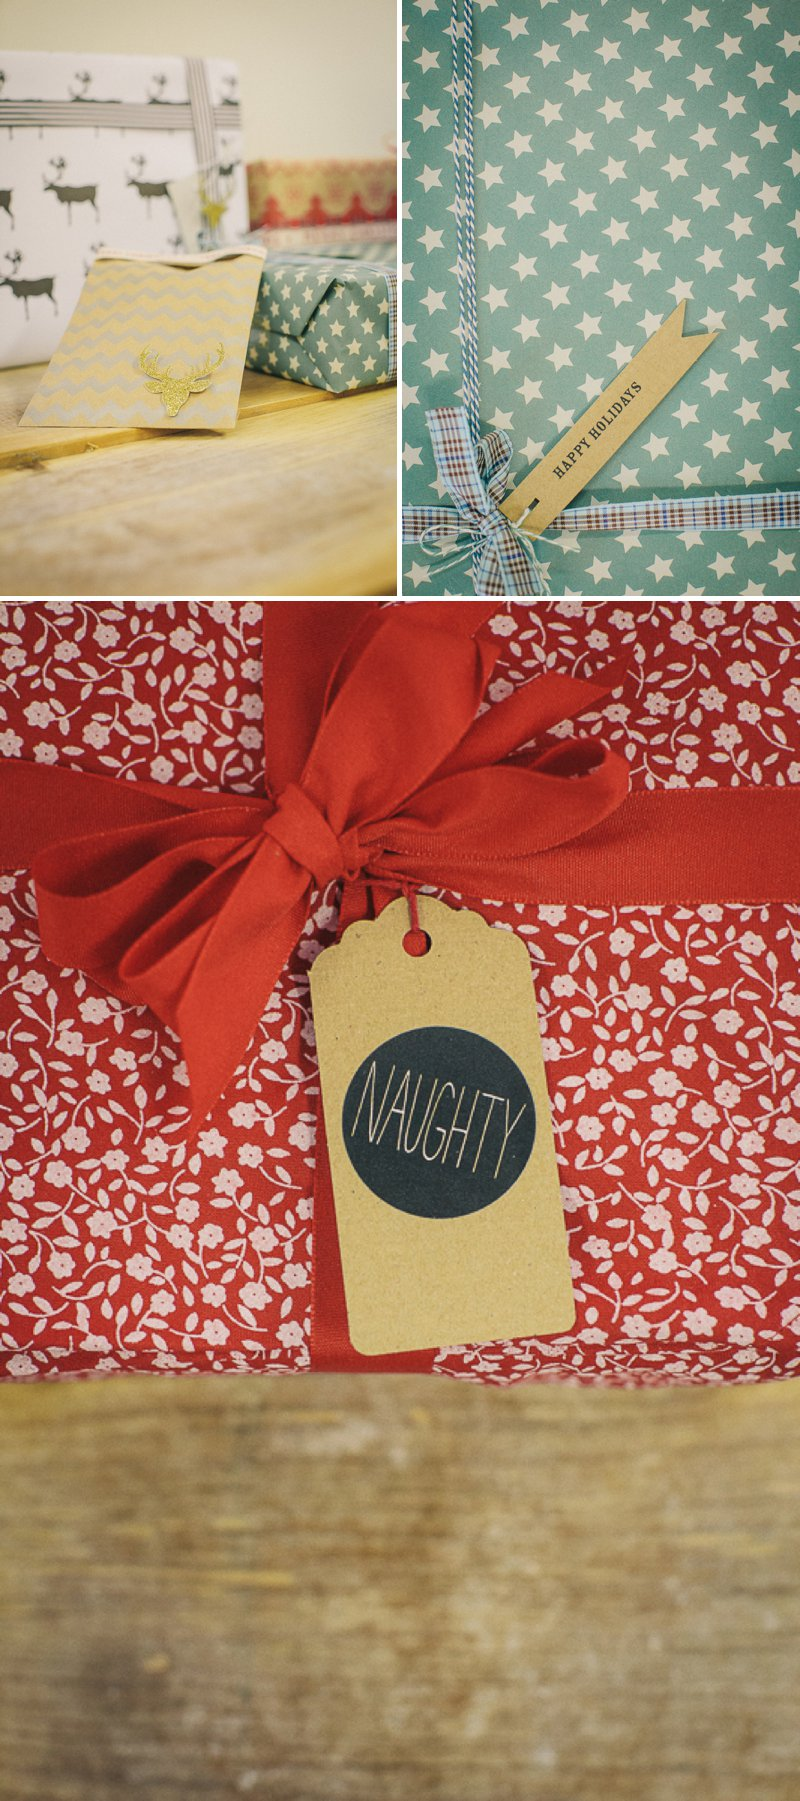 Nine Beautiful And Creative Christmas DIY Gift Wrap Ideas With Ribbons, Fun Gift Tags and Gorgeous Wrapping Paper From Etsy Suppliers._0005